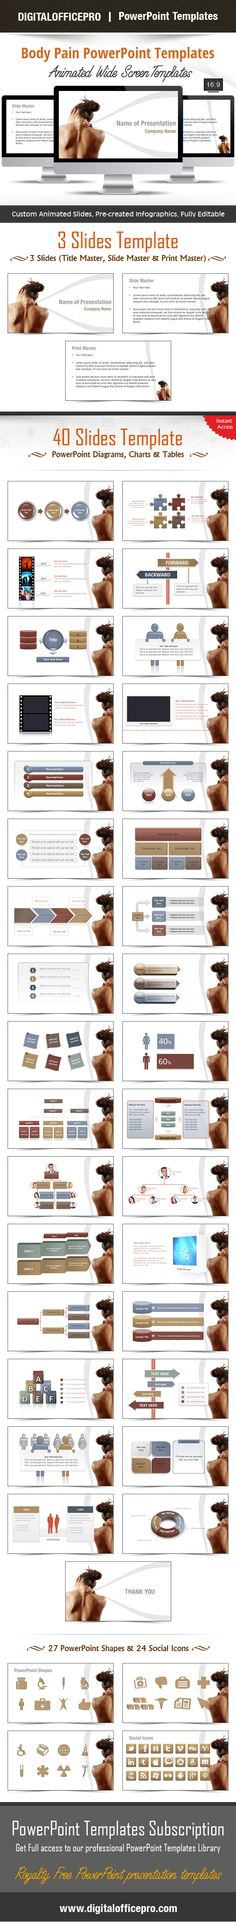 Impress and Engage your audience with Body Pain PowerPoint Template and Body Pain PowerPoint Backgrounds from DigitalOfficePro. Each template comes with a set of PowerPoint Diagrams, Charts & Shapes and are available for instant download.